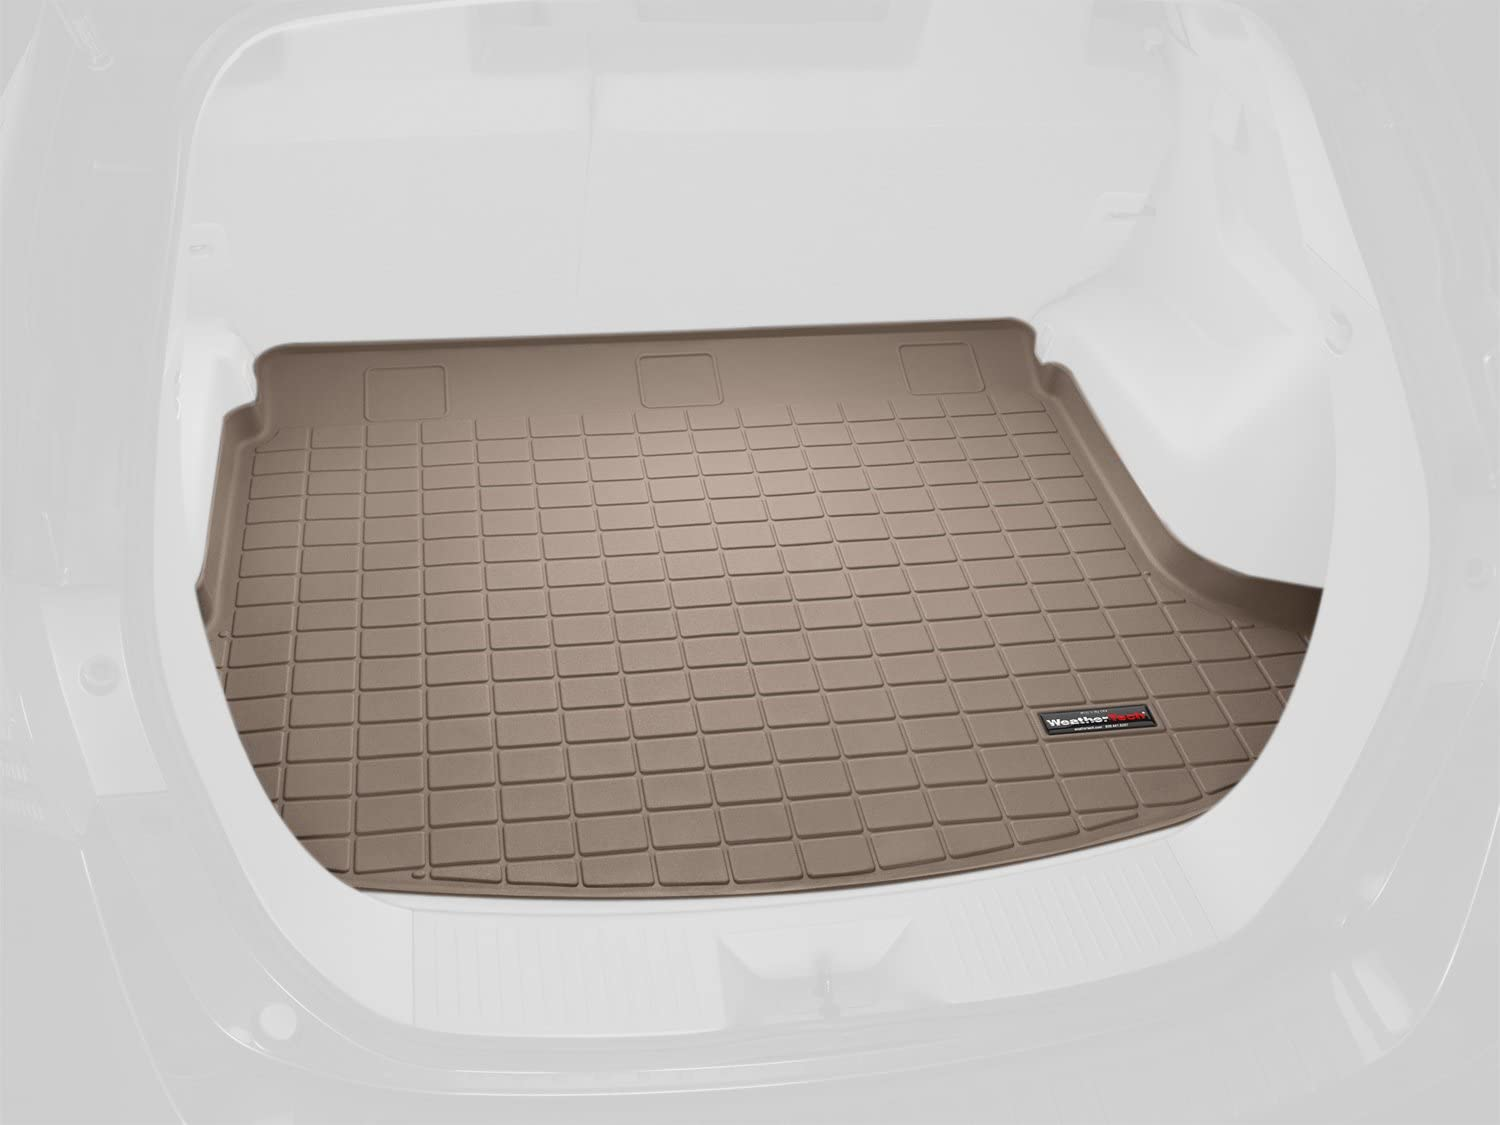 WeatherTech Custom Fit Cargo Liners Tan 25% Max 72% OFF OFF Escalade Cadillac for